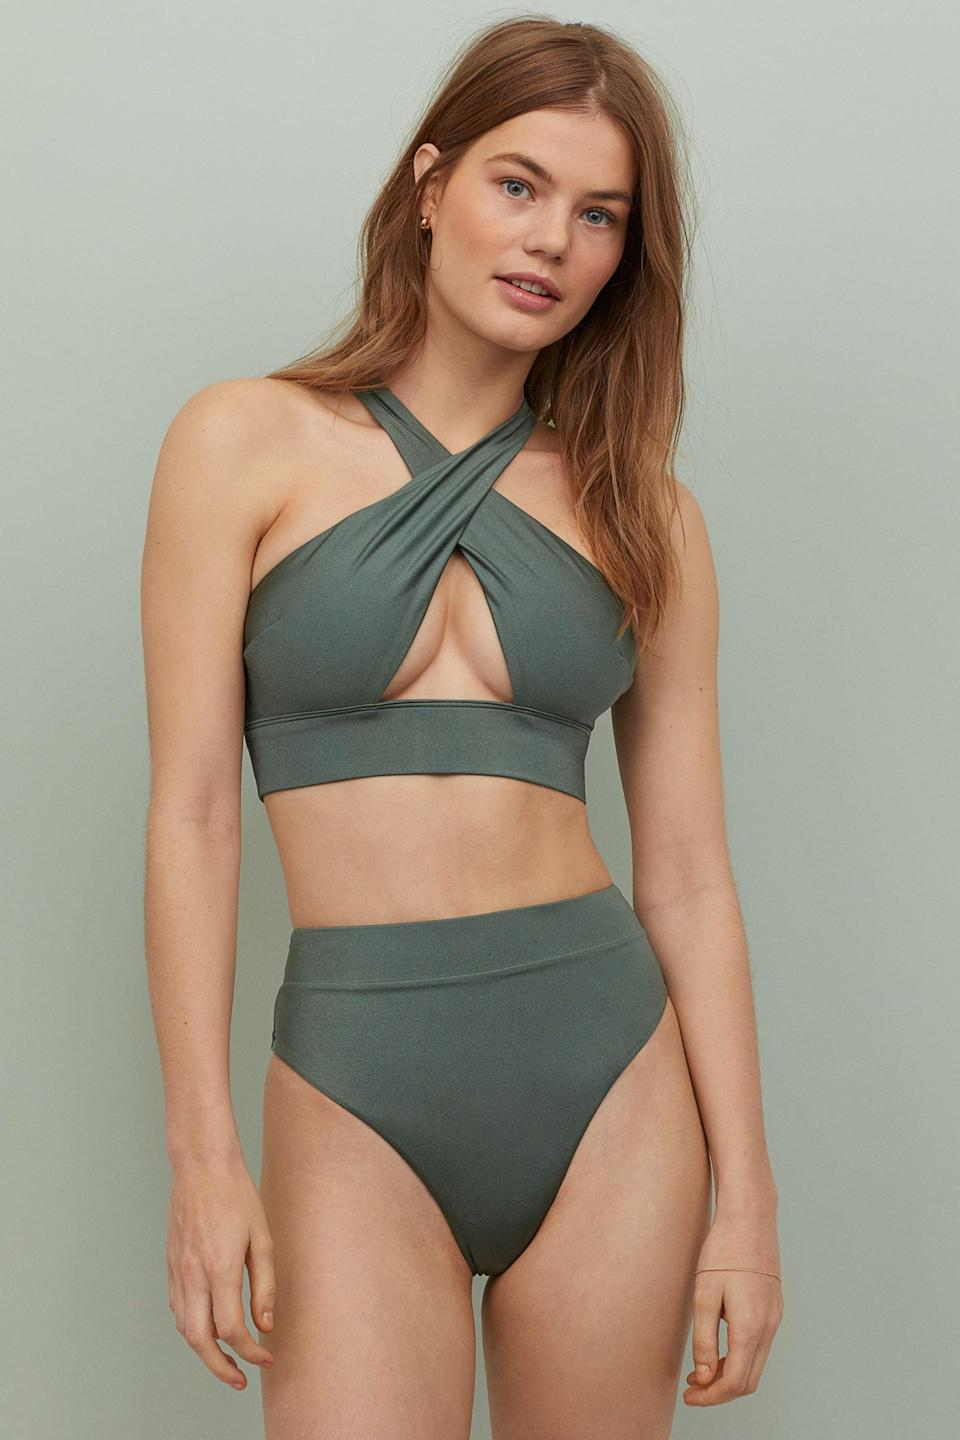 "<p>Show off in this <a href=""https://www.popsugar.com/buy/HampM-Bikini-Top-552789?p_name=H%26amp%3BM%20Bikini%20Top&retailer=www2.hm.com&pid=552789&price=20&evar1=fab%3Auk&evar9=47287039&evar98=https%3A%2F%2Fwww.popsugar.com%2Ffashion%2Fphoto-gallery%2F47287039%2Fimage%2F47287085%2FHM-Bikini-Top-Brazilian-Bikini-Bottoms&list1=bikini%2Cshopping%2Cproducts%20under%20%24100%2Cswimsuits&prop13=api&pdata=1"" class=""link rapid-noclick-resp"" rel=""nofollow noopener"" target=""_blank"" data-ylk=""slk:H&M Bikini Top"">H&M Bikini Top</a> ($20) and <a href=""https://www.popsugar.com/buy/Brazilian-Bikini-Bottoms-552813?p_name=%20Brazilian%20Bikini%20Bottoms&retailer=www2.hm.com&pid=552813&price=18&evar1=fab%3Auk&evar9=47287039&evar98=https%3A%2F%2Fwww.popsugar.com%2Ffashion%2Fphoto-gallery%2F47287039%2Fimage%2F47287085%2FHM-Bikini-Top-Brazilian-Bikini-Bottoms&list1=bikini%2Cshopping%2Cproducts%20under%20%24100%2Cswimsuits&prop13=api&pdata=1"" class=""link rapid-noclick-resp"" rel=""nofollow noopener"" target=""_blank"" data-ylk=""slk:Brazilian Bikini Bottoms""> Brazilian Bikini Bottoms</a> ($18) set.</p>"